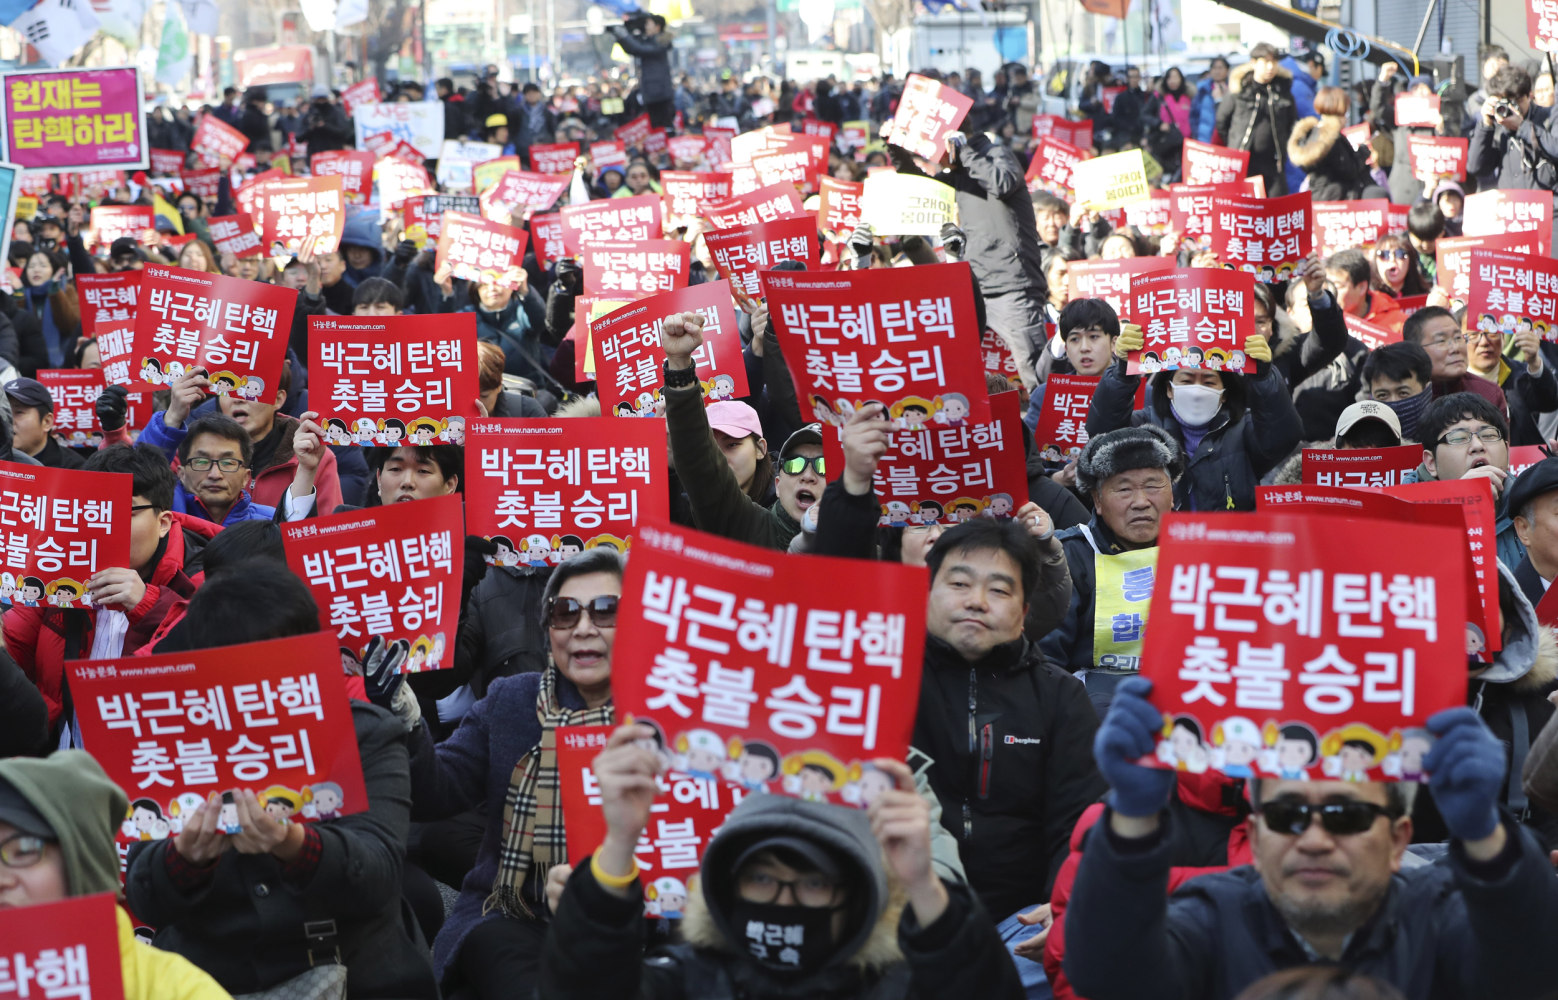 Violence Erupts In The Streets After South Korean President's Fall